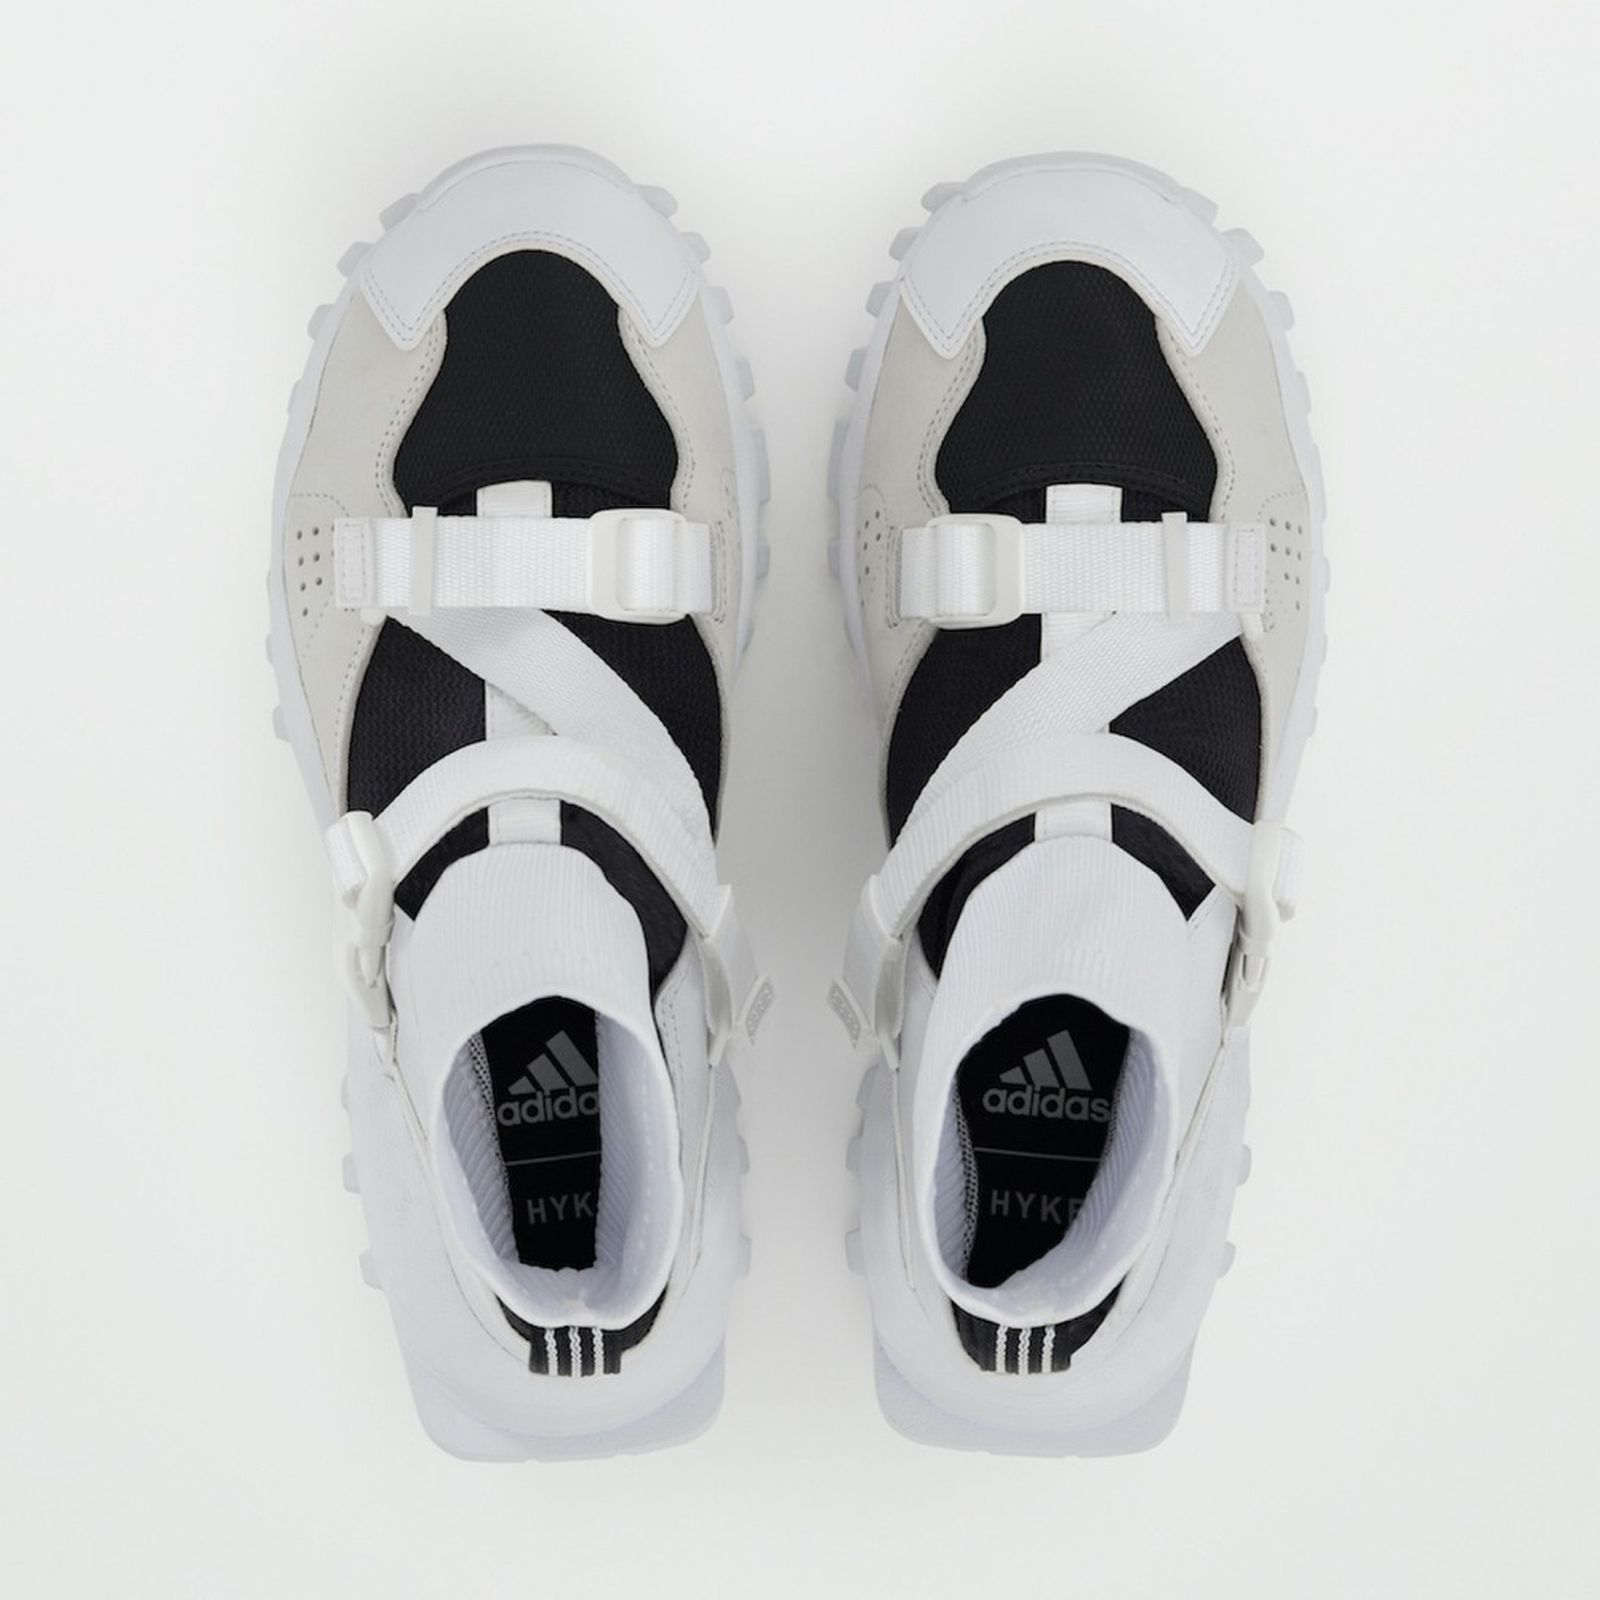 hyke-adidas-collab-fw20-sneakers-7